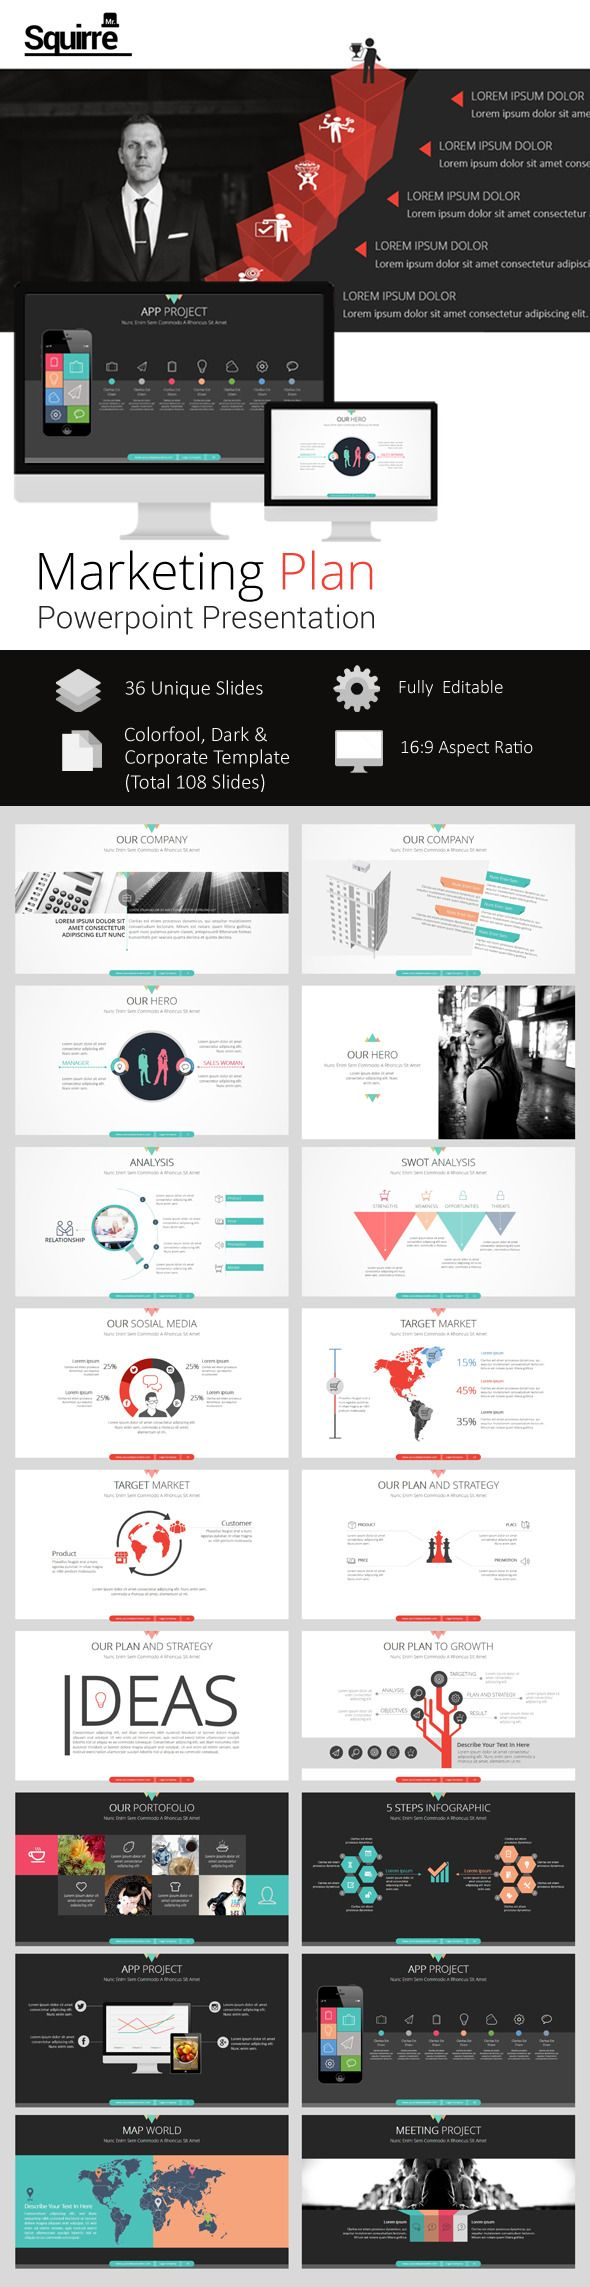 Marketing Plan Powerpoint Presentation Template #powerpoint #powerpointtemplate #presentation Download: http://graphicriver.net/item/marketing-plan-powerpoint-presentation/9513379?ref=ksioks                                                                                                                                                                                 More